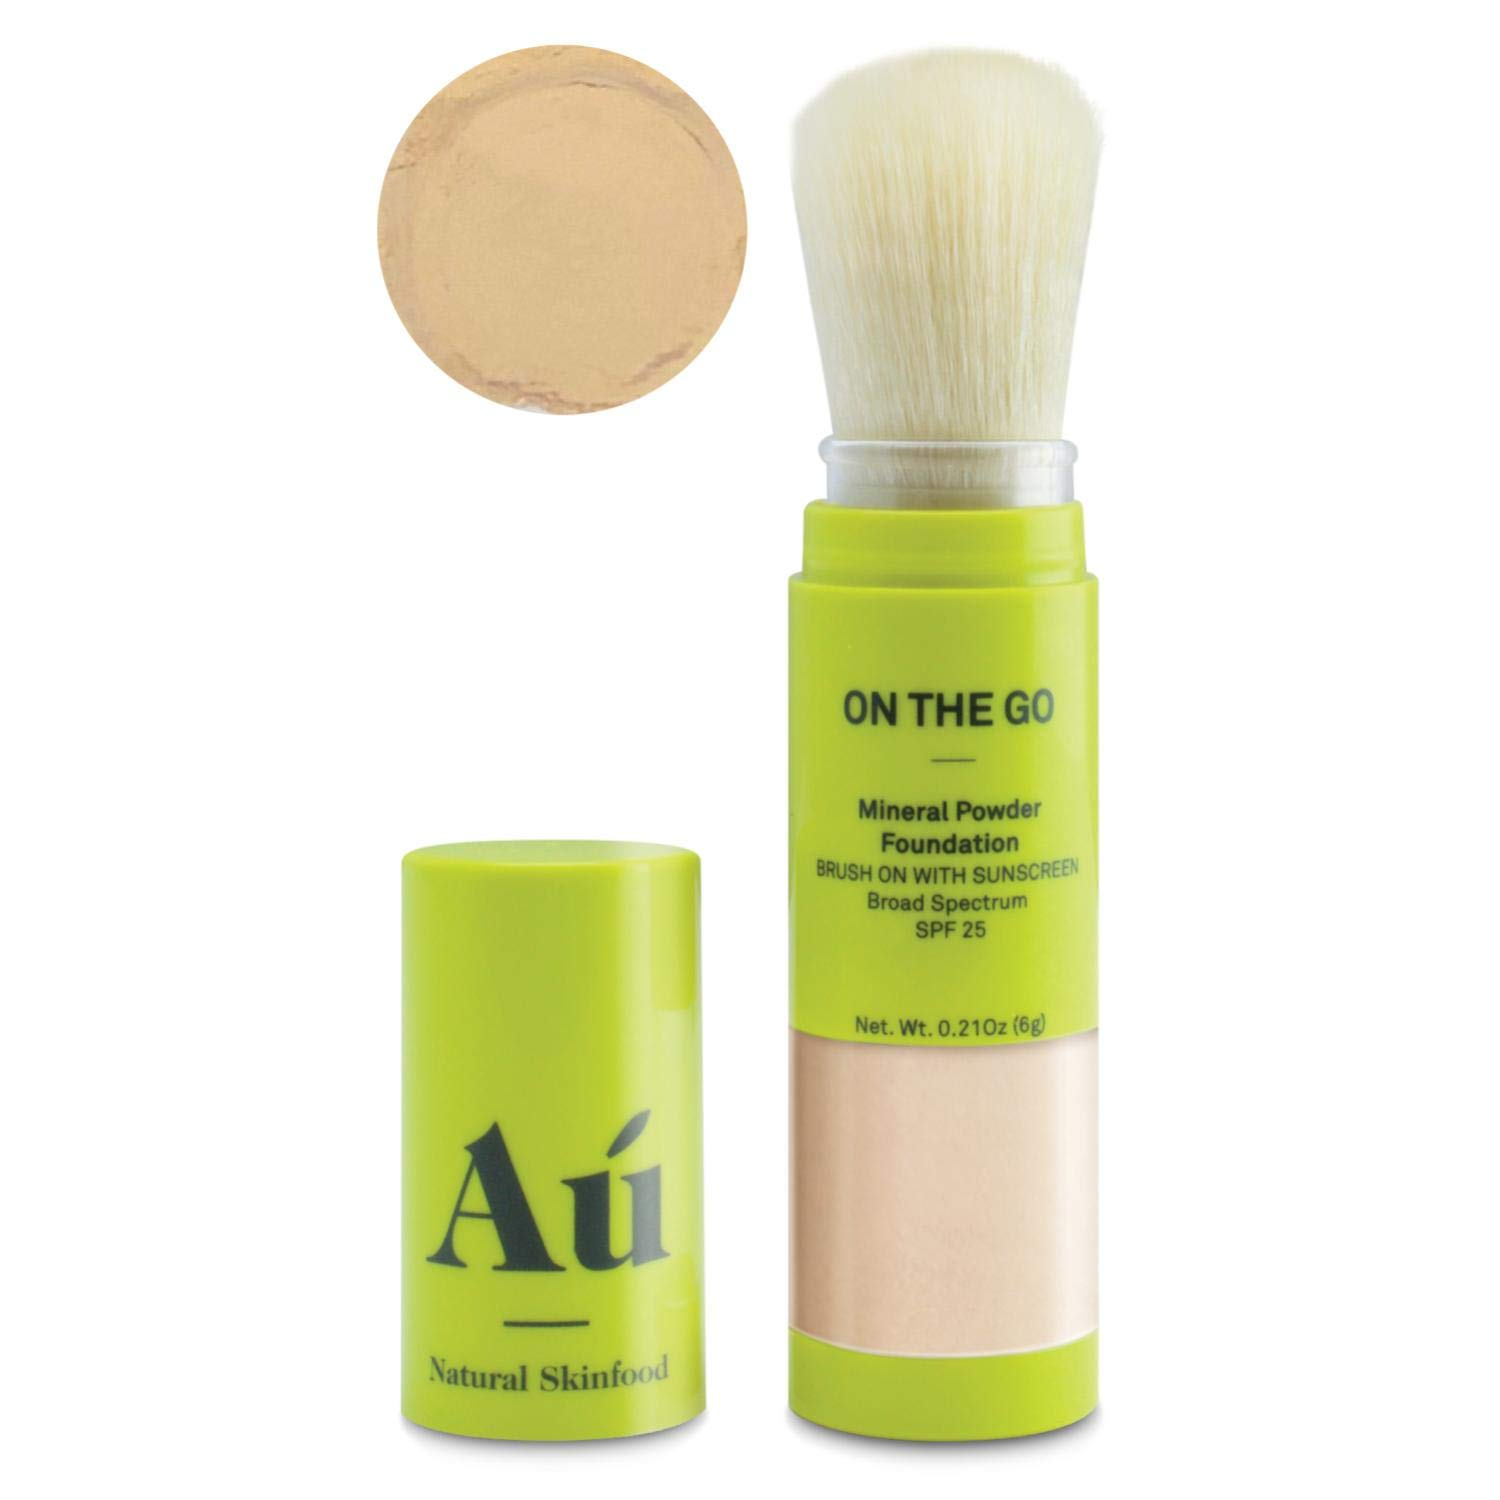 On the Go Mineral Powder Brush-On Sunscreen (Light) by Au Natural Skinfood | Broad Spectrum SPF 25 UVA/UVB Protection | Oil-free; Reef Safe; Translucent Tinted Sun Safety for Men, Women, and Children